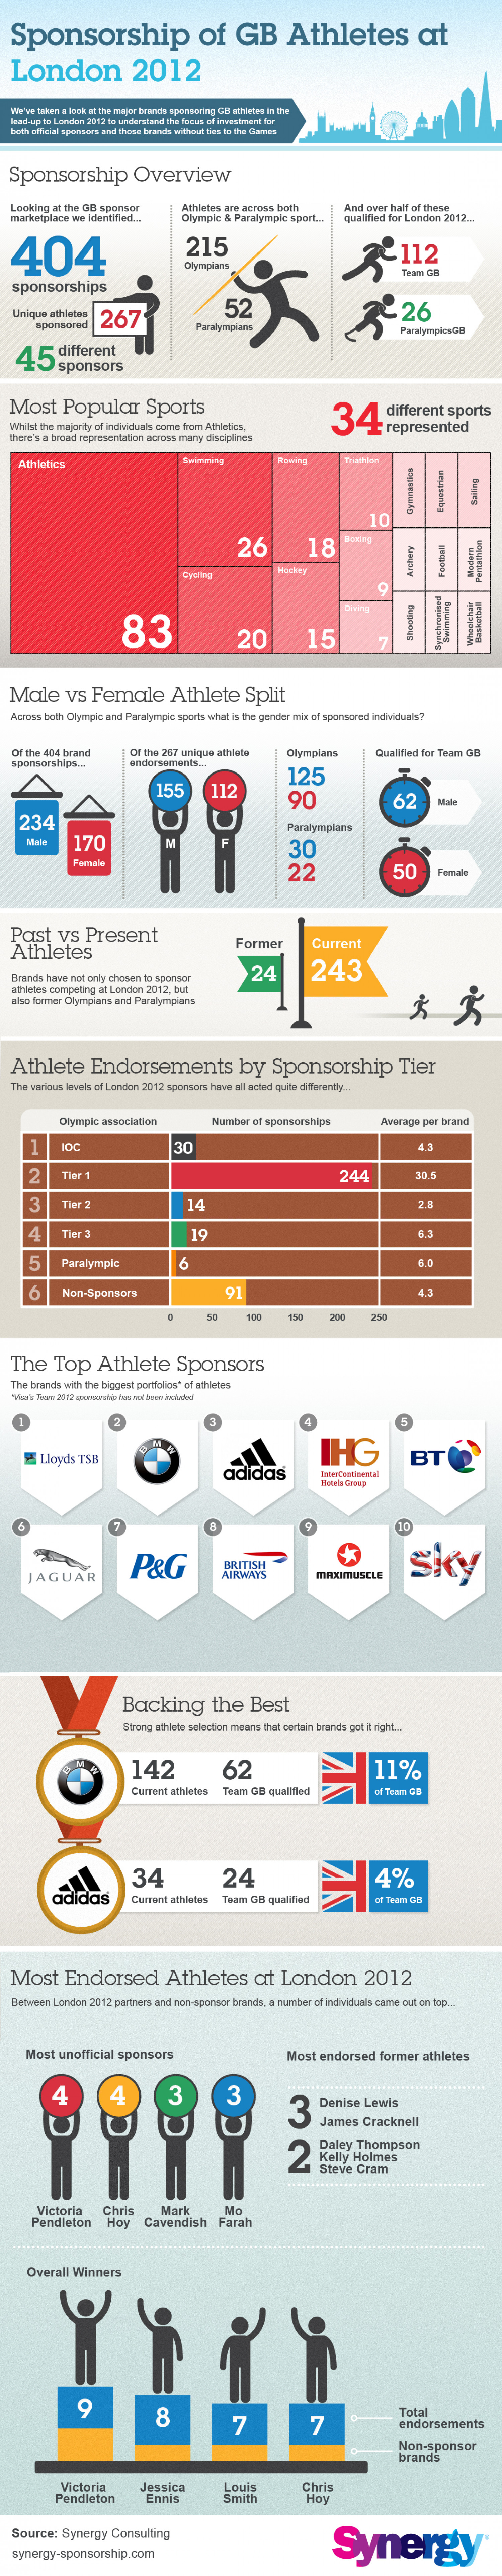 Sponsorship of GB Athletes at London 2012 Infographic